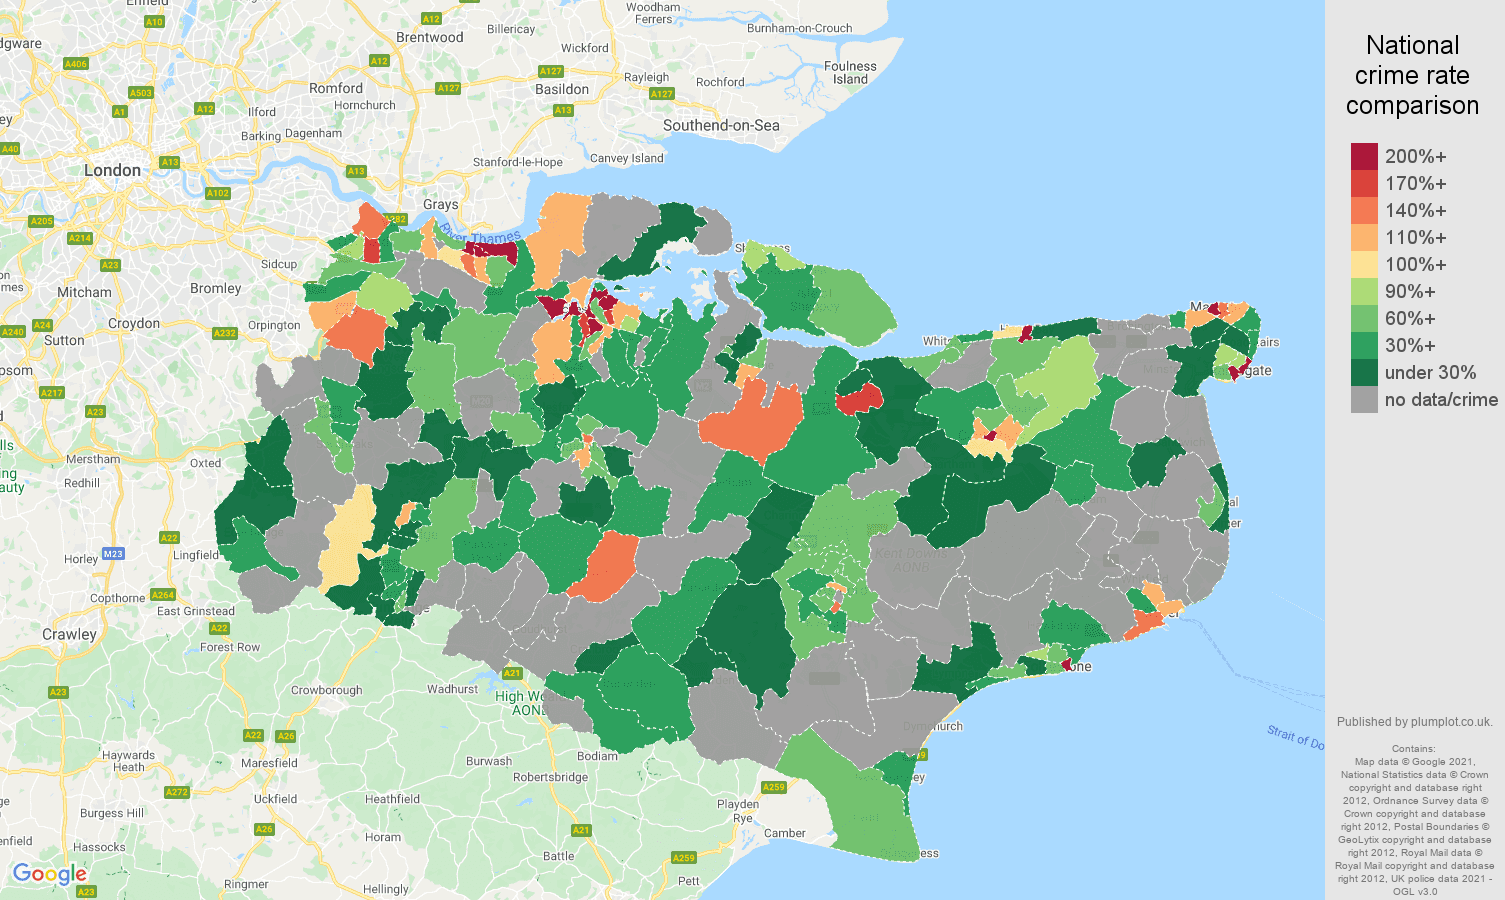 Kent robbery crime rate comparison map